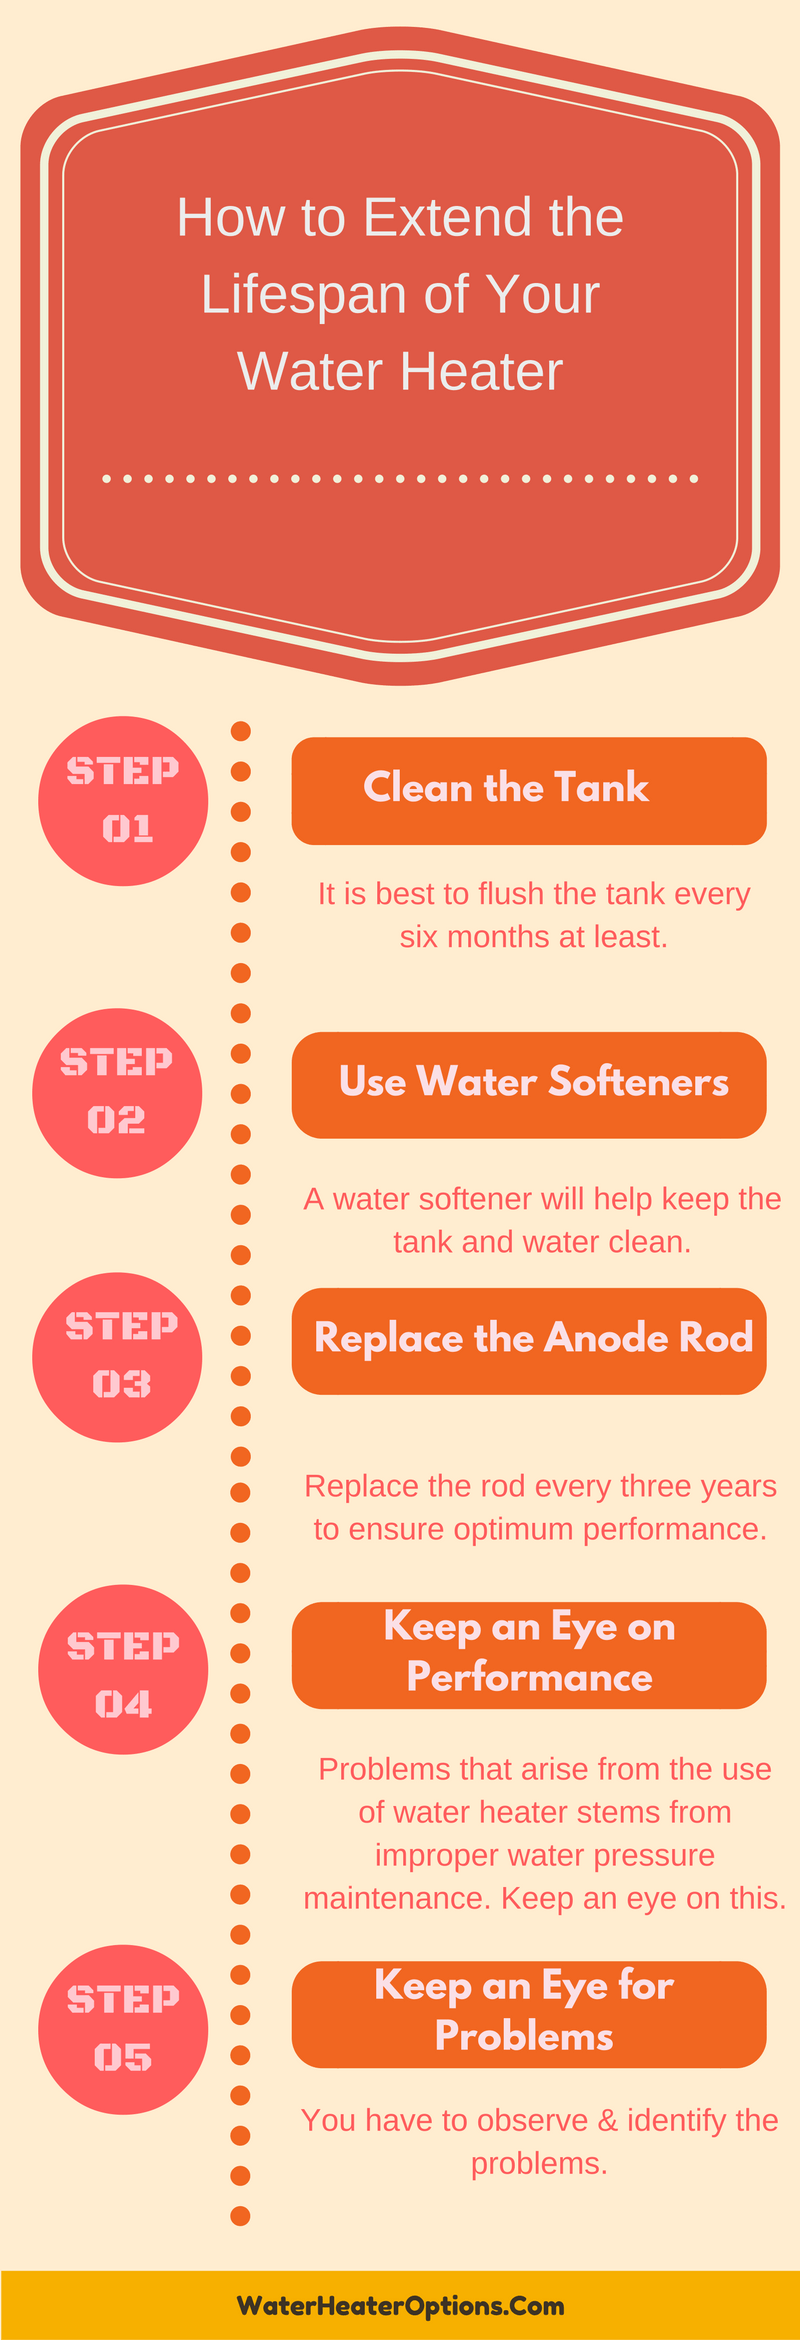 how-to-extend-the-lifespan-of-your-water-heater